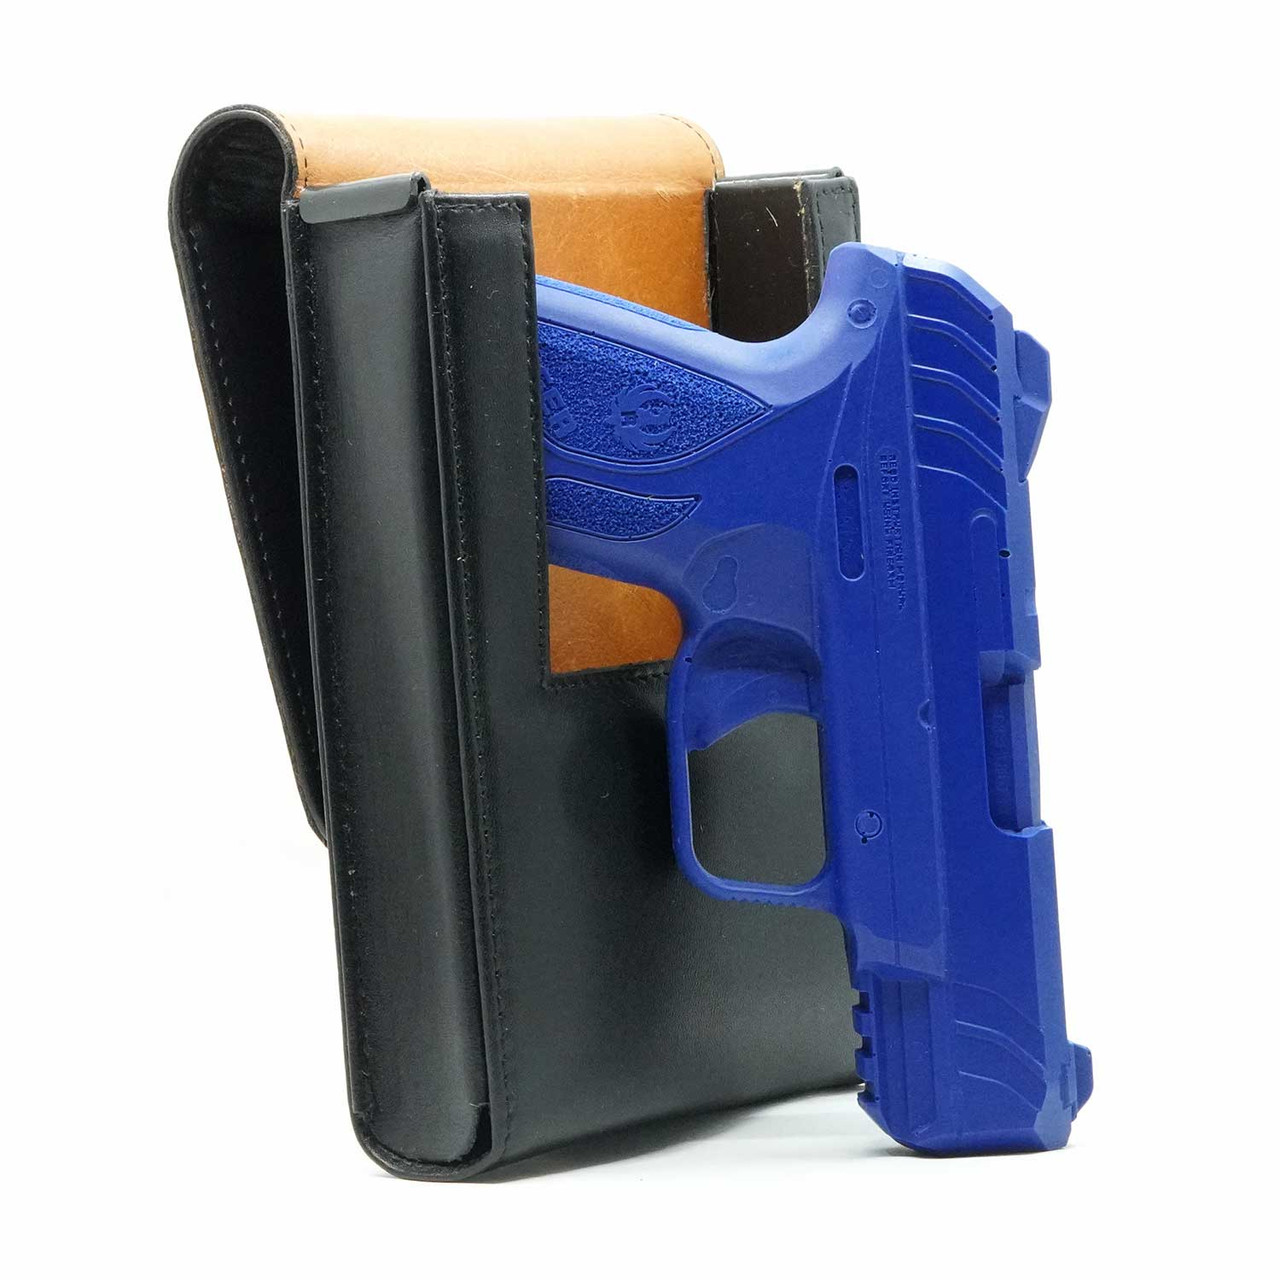 Ruger Security 9 Compact Concealed Carry Holster (Belt Loop)